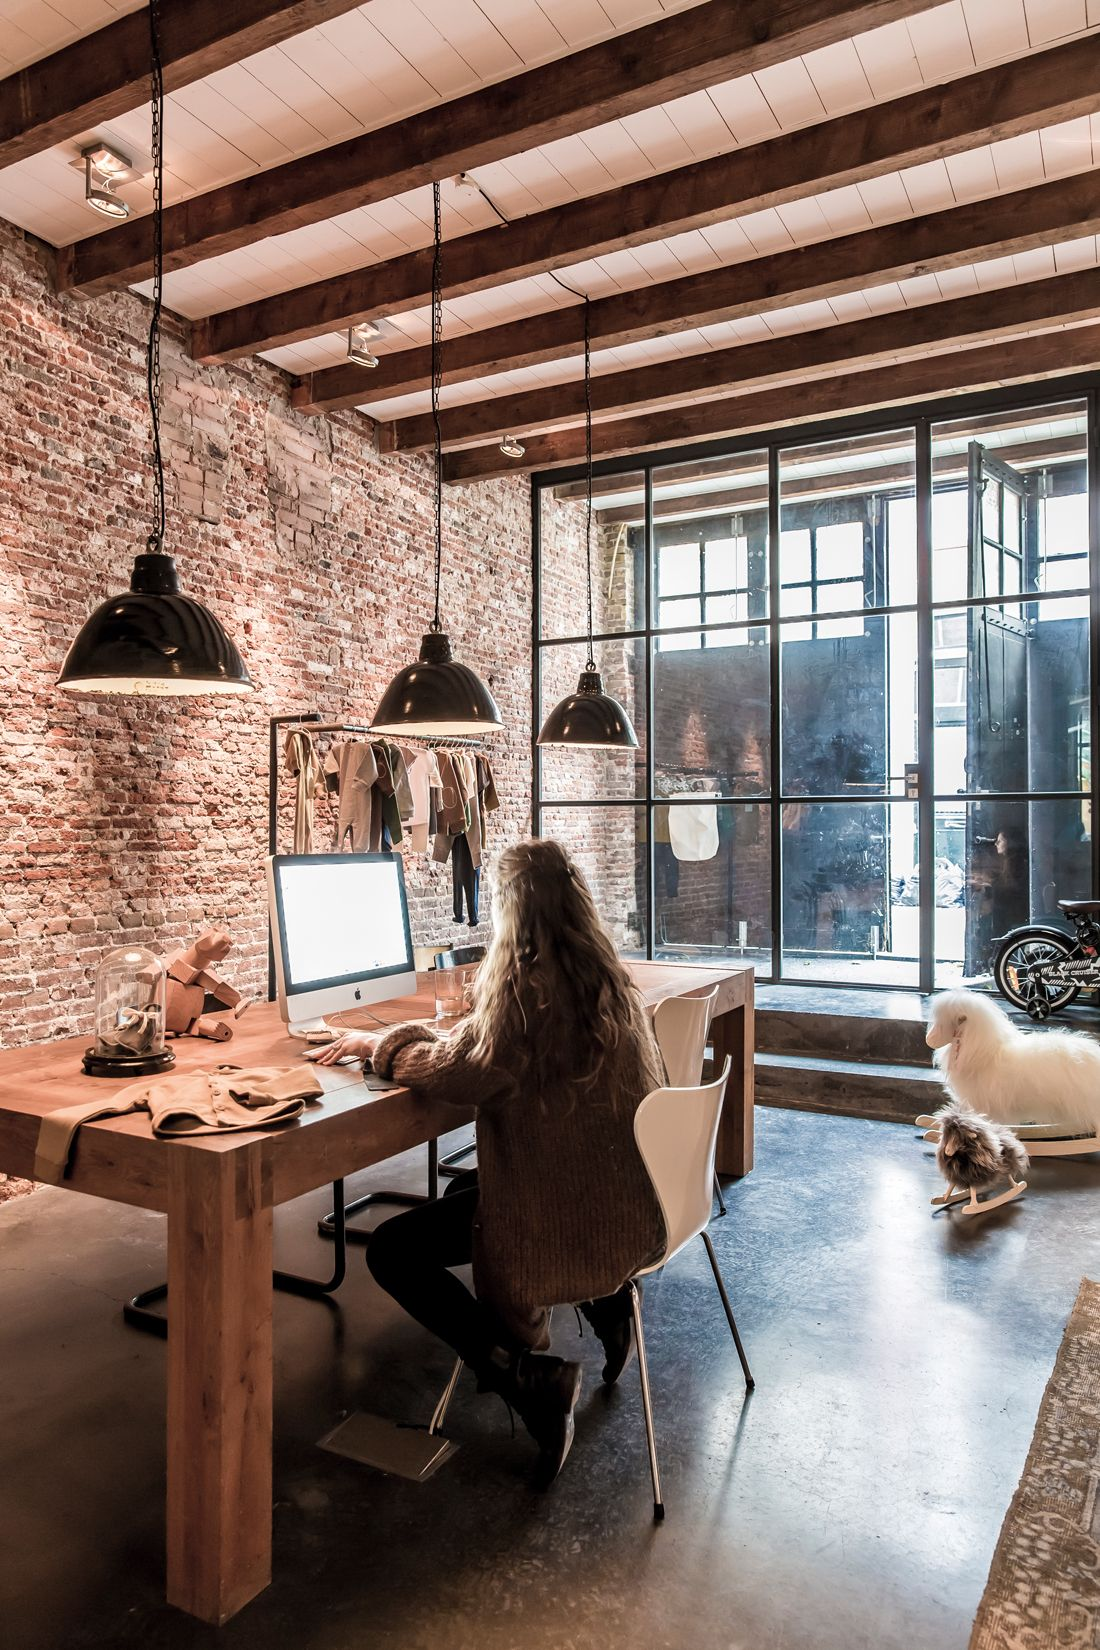 Amsterdam : Warehouse | Lofts, Loft spaces and Warehouse